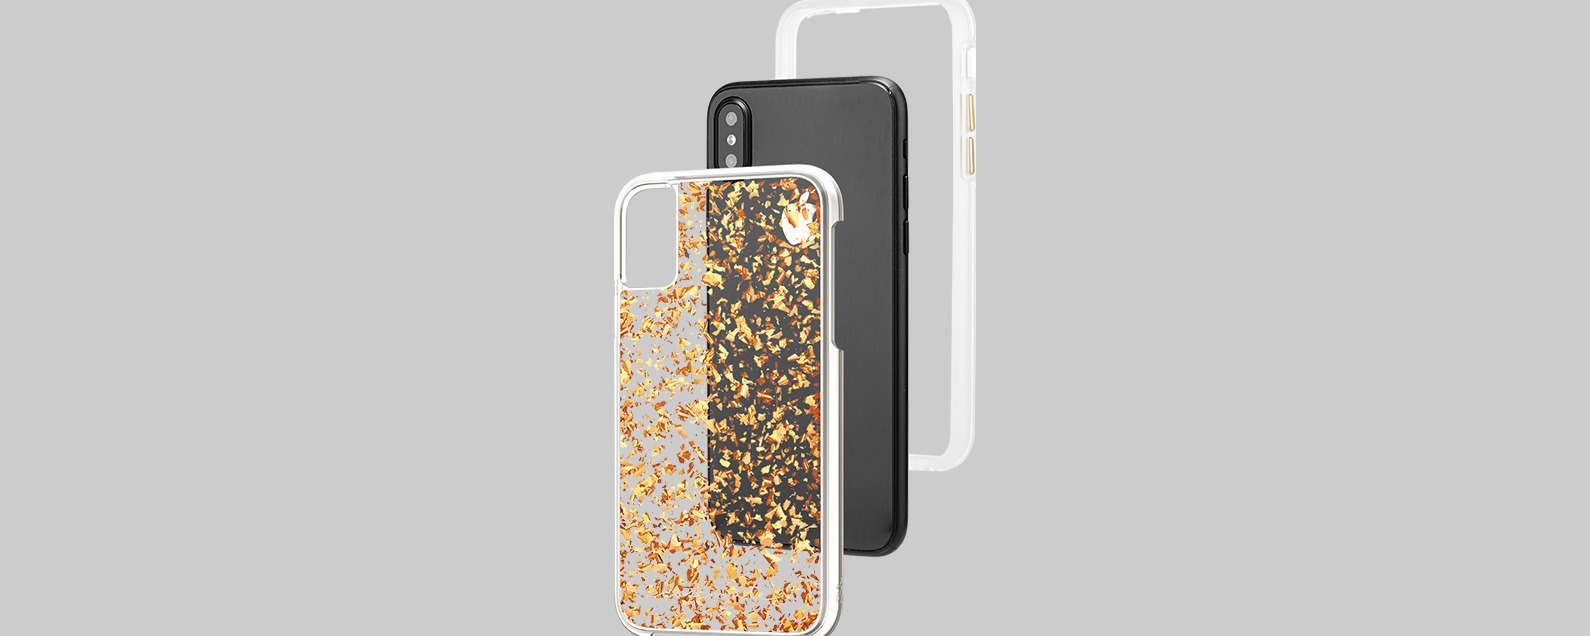 iphone xs indestructible case